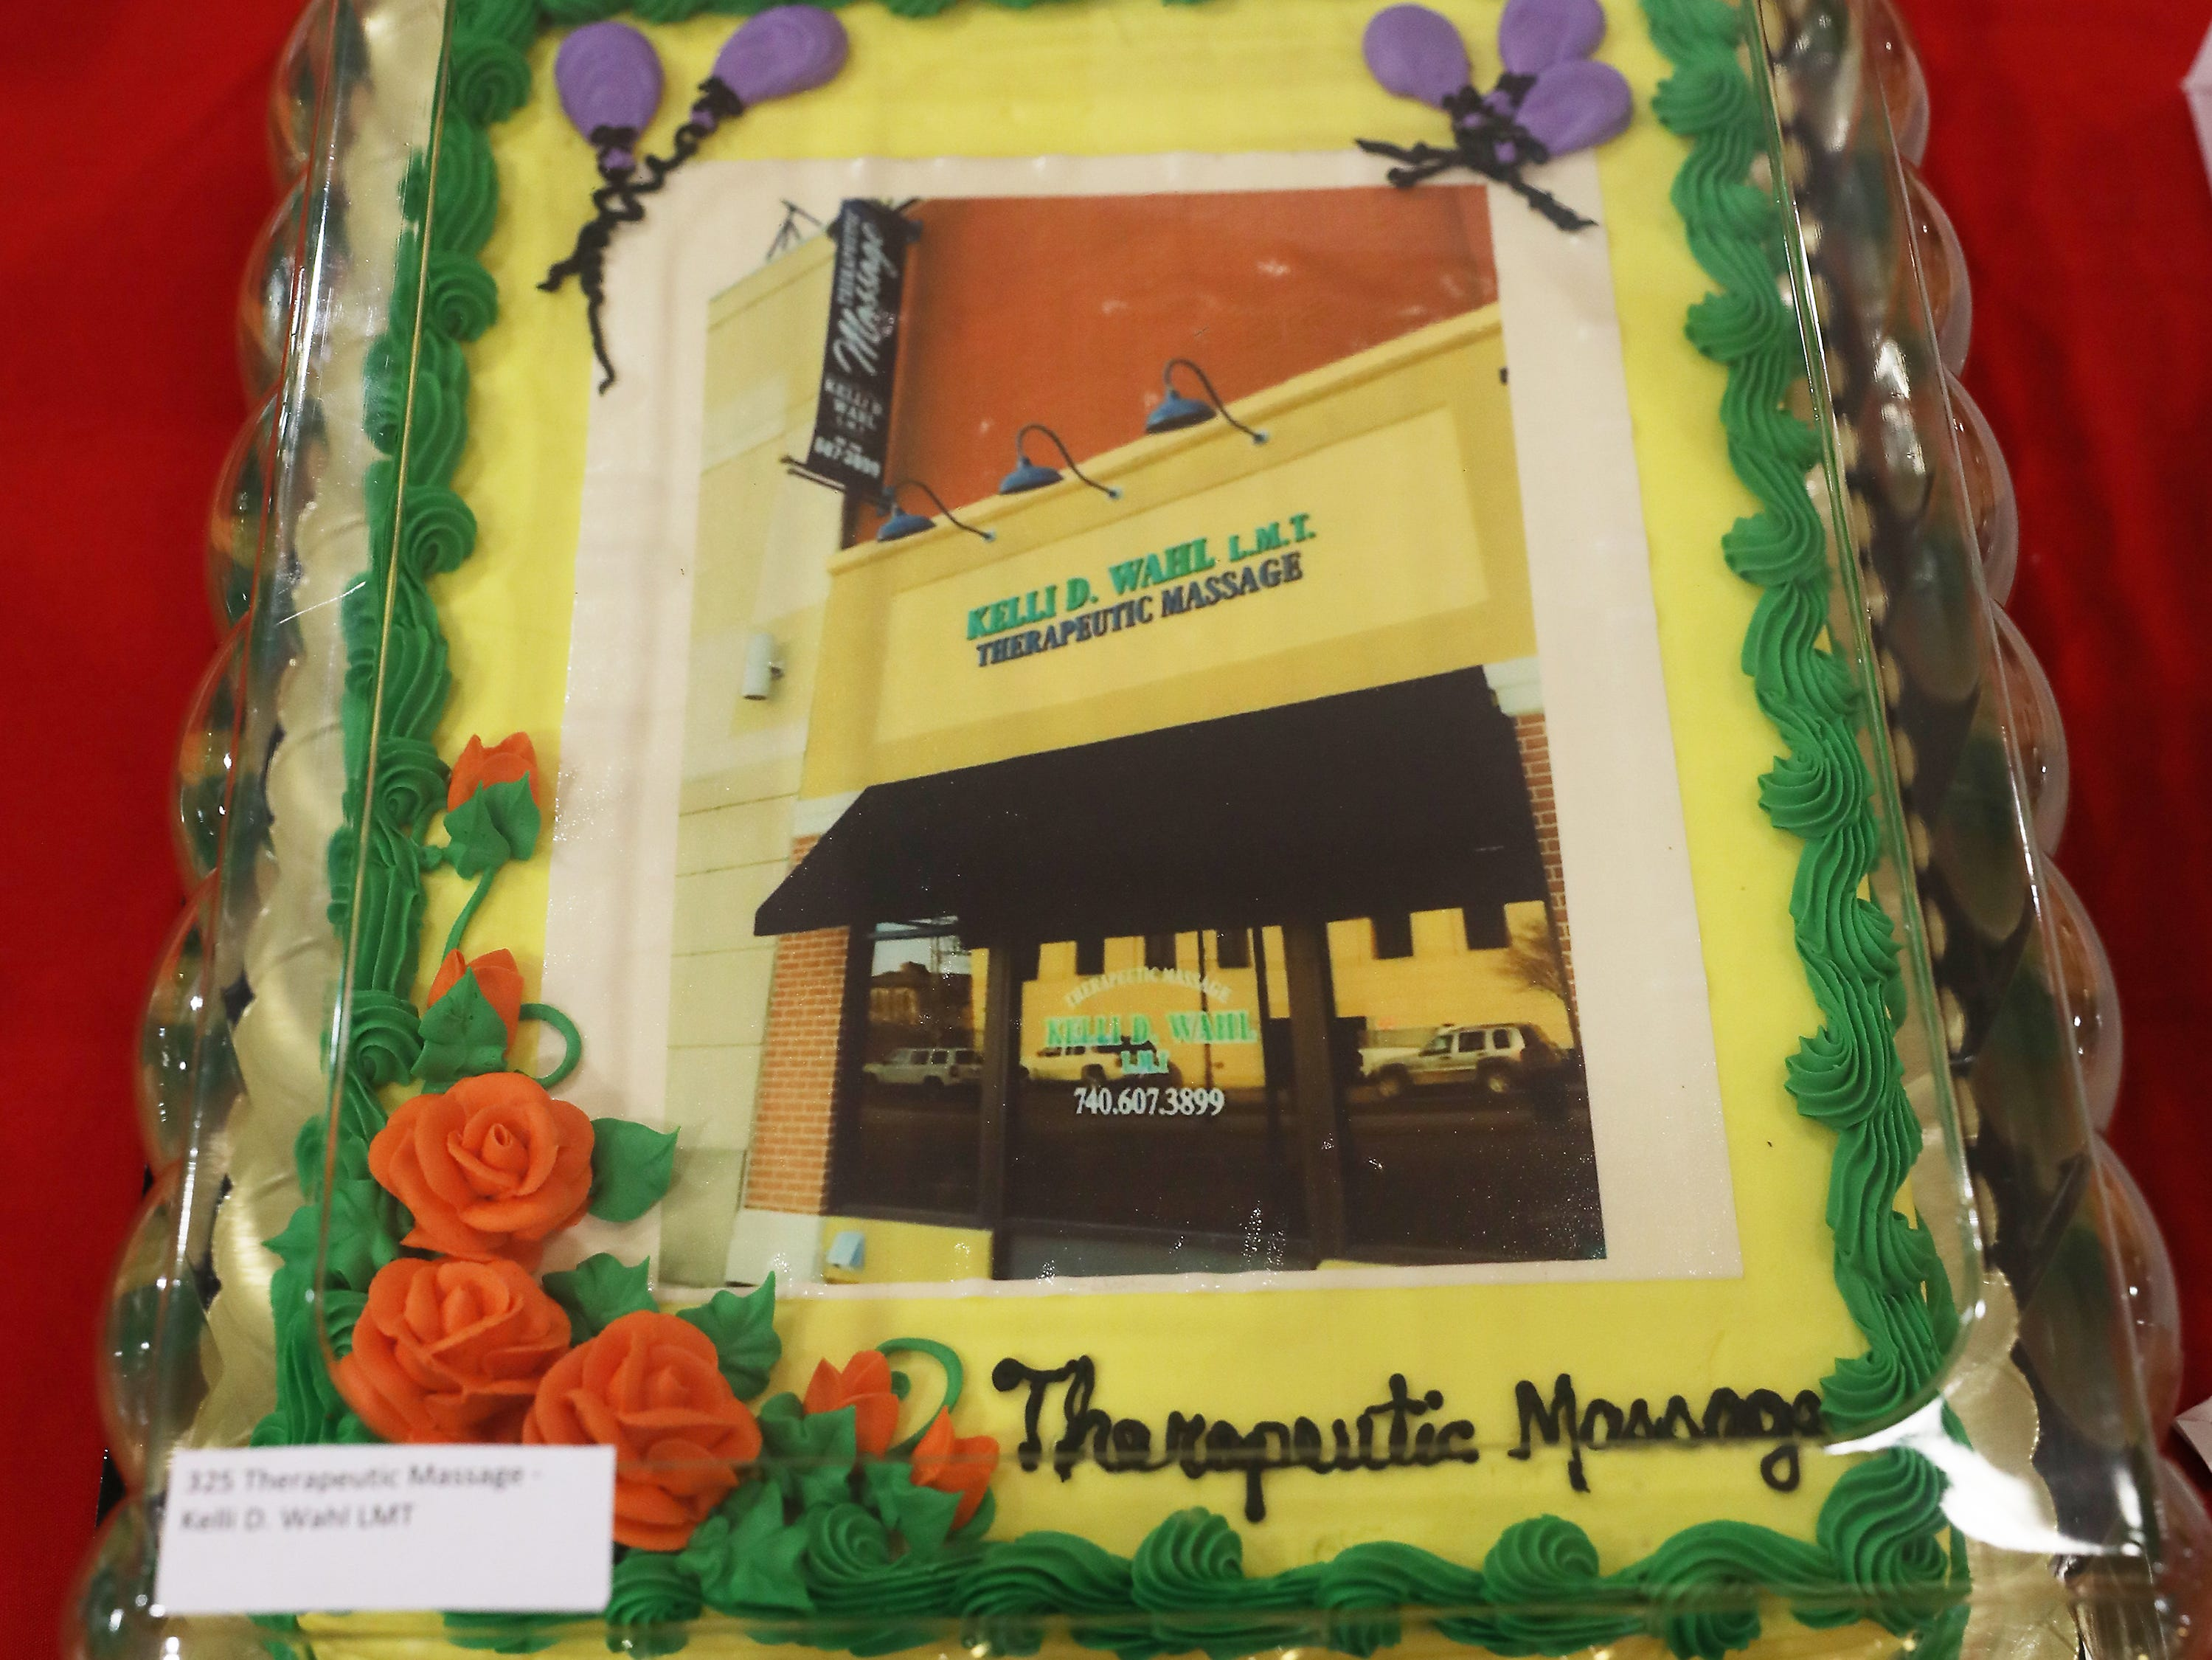 2 P.M. Friday cake 325 Therapeutic Massage Kelli D. Wahl LMT - 75 minute massage gift card, 2 handmade pottery pieces; $100